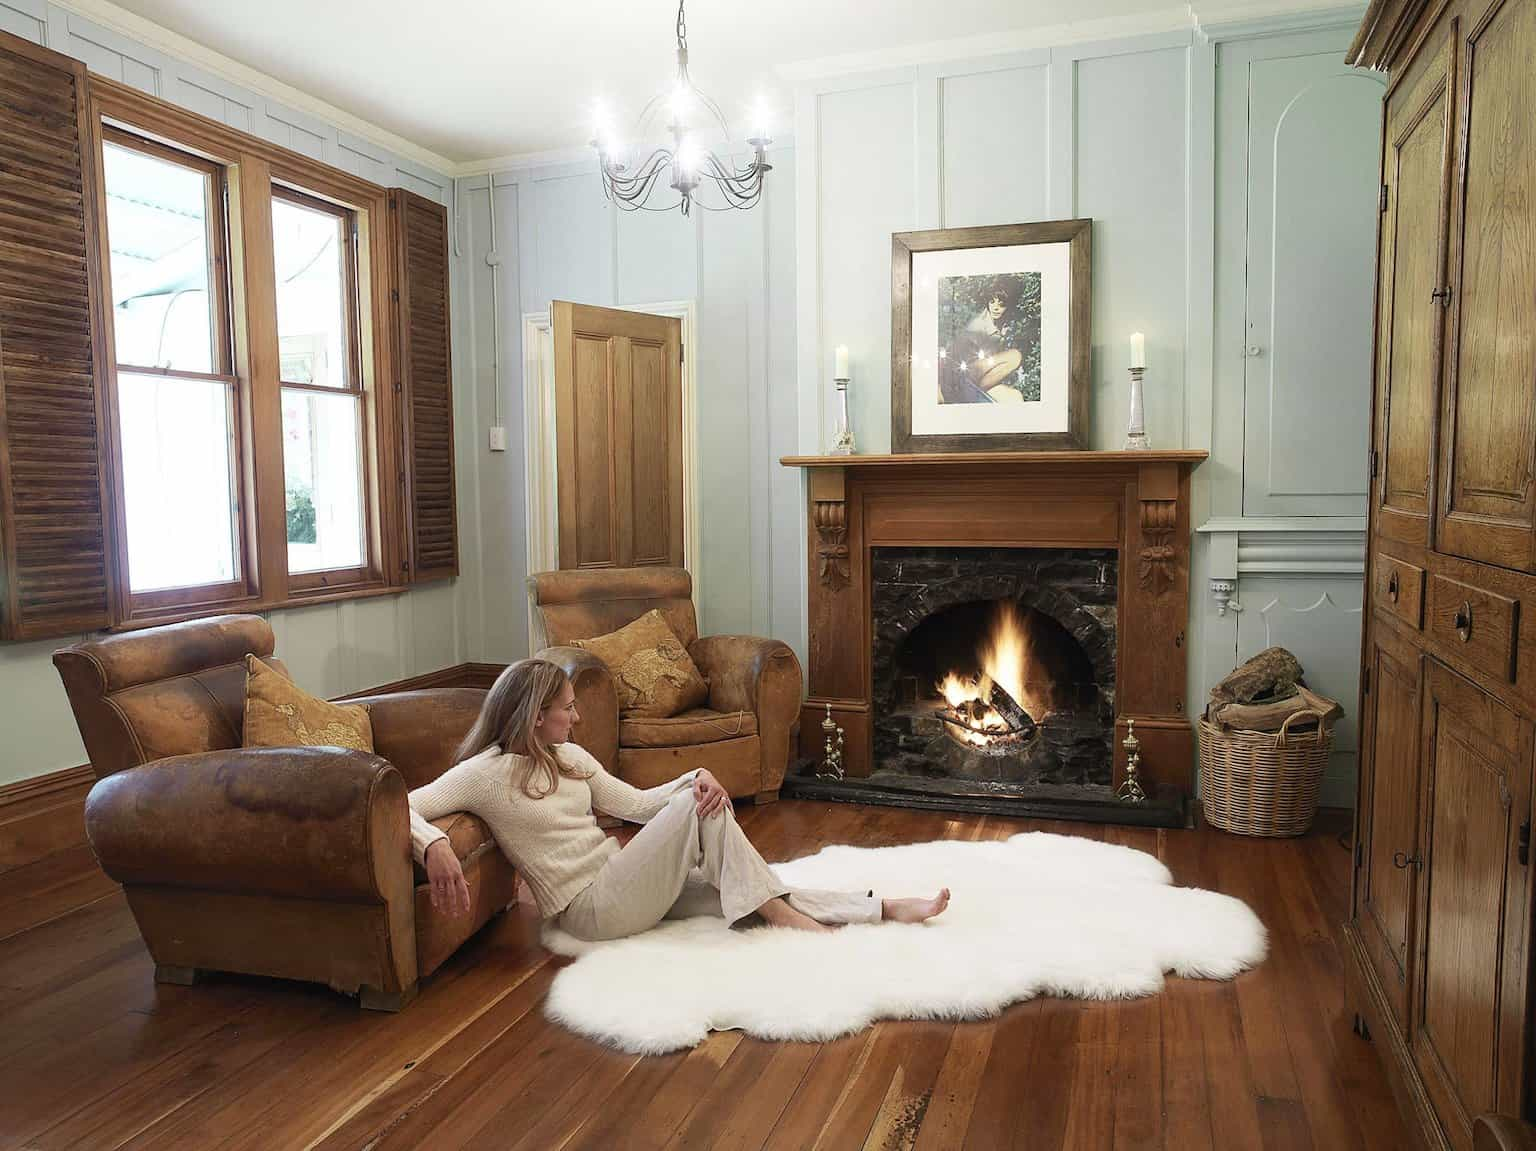 Classic Wooden Living Room With Quarto Sheepskin Rug 4× (Image 4 of 15)